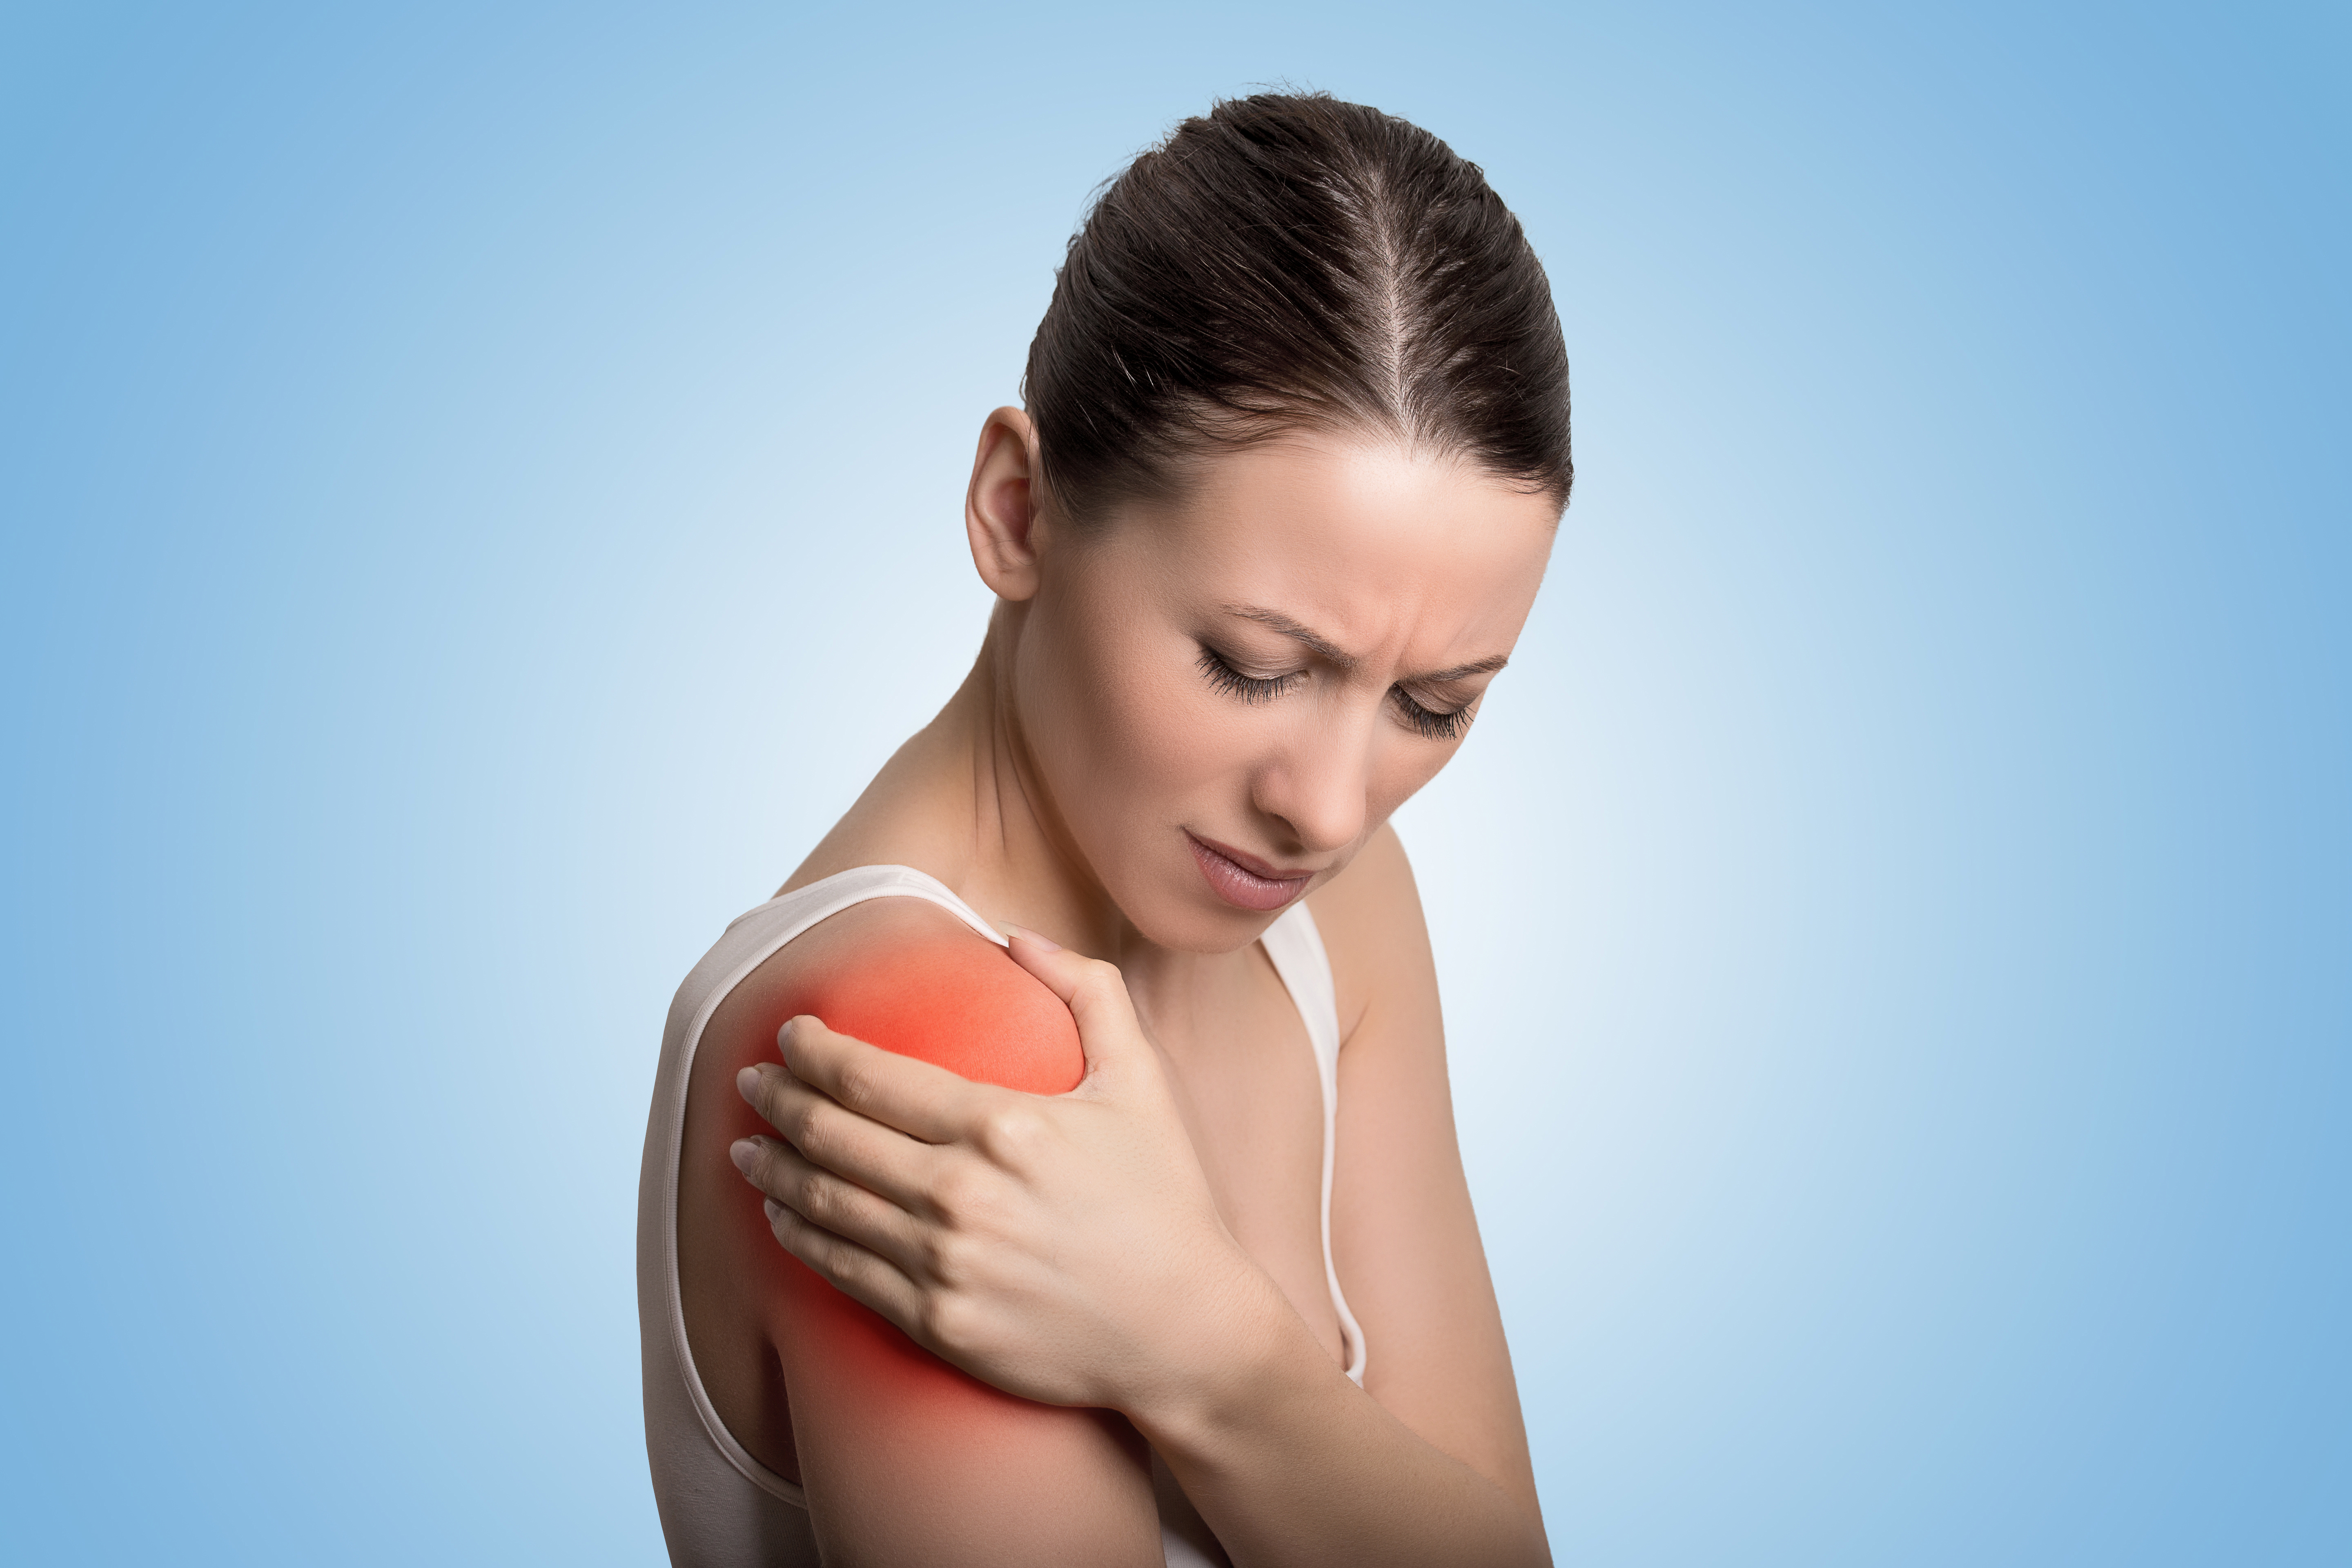 Young woman patient in pain having painful shoulder colored inred.